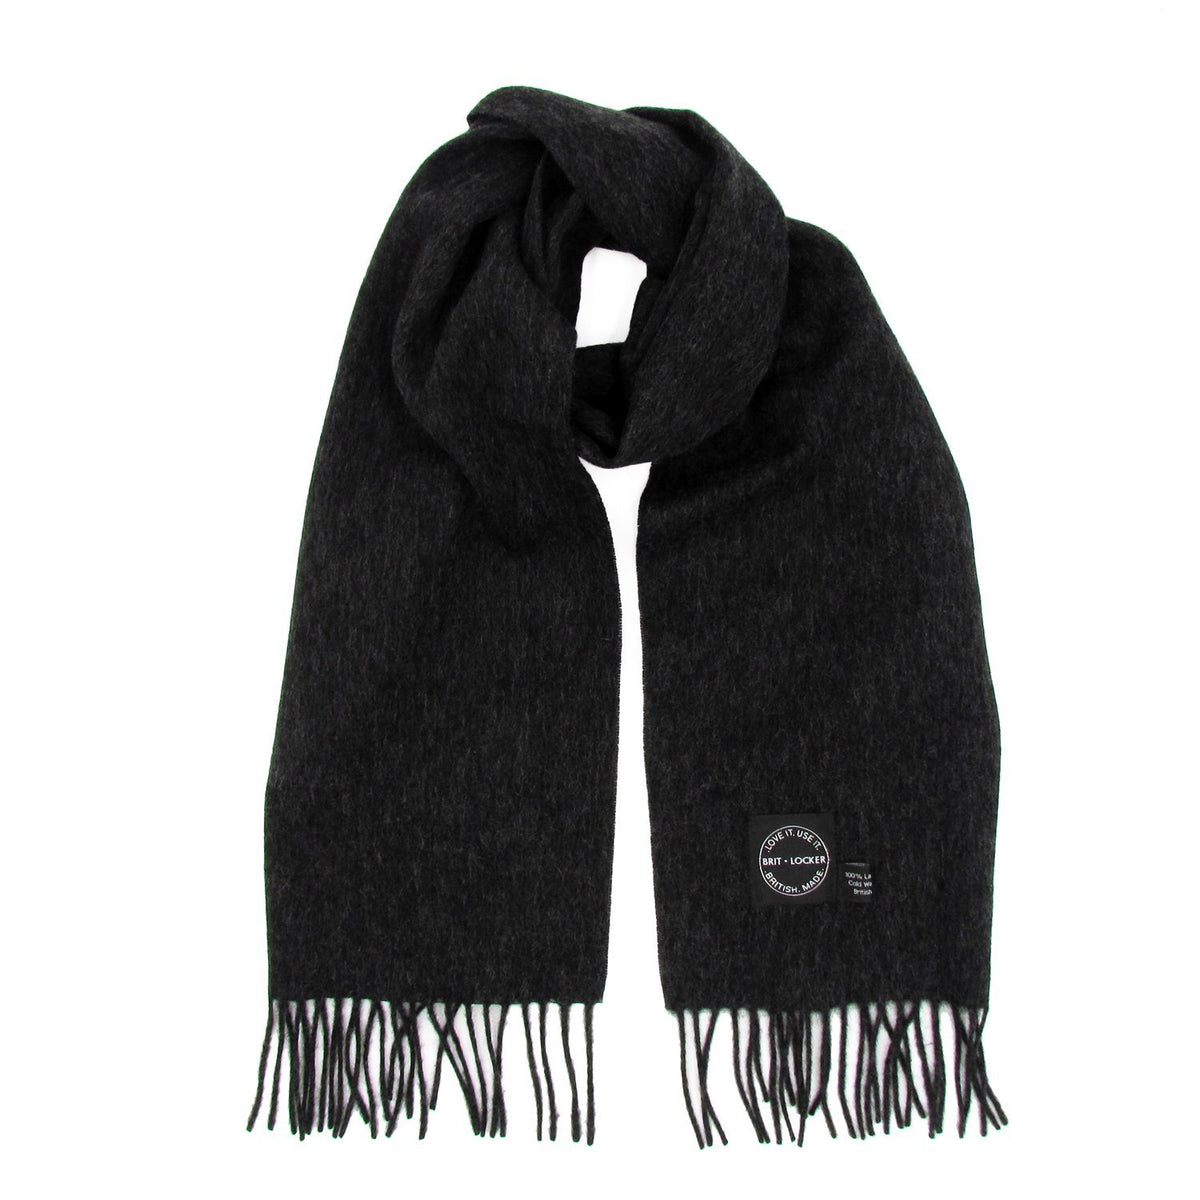 Charcoal Lambswool Scarf - Made in Britain - BRIT LOCKER